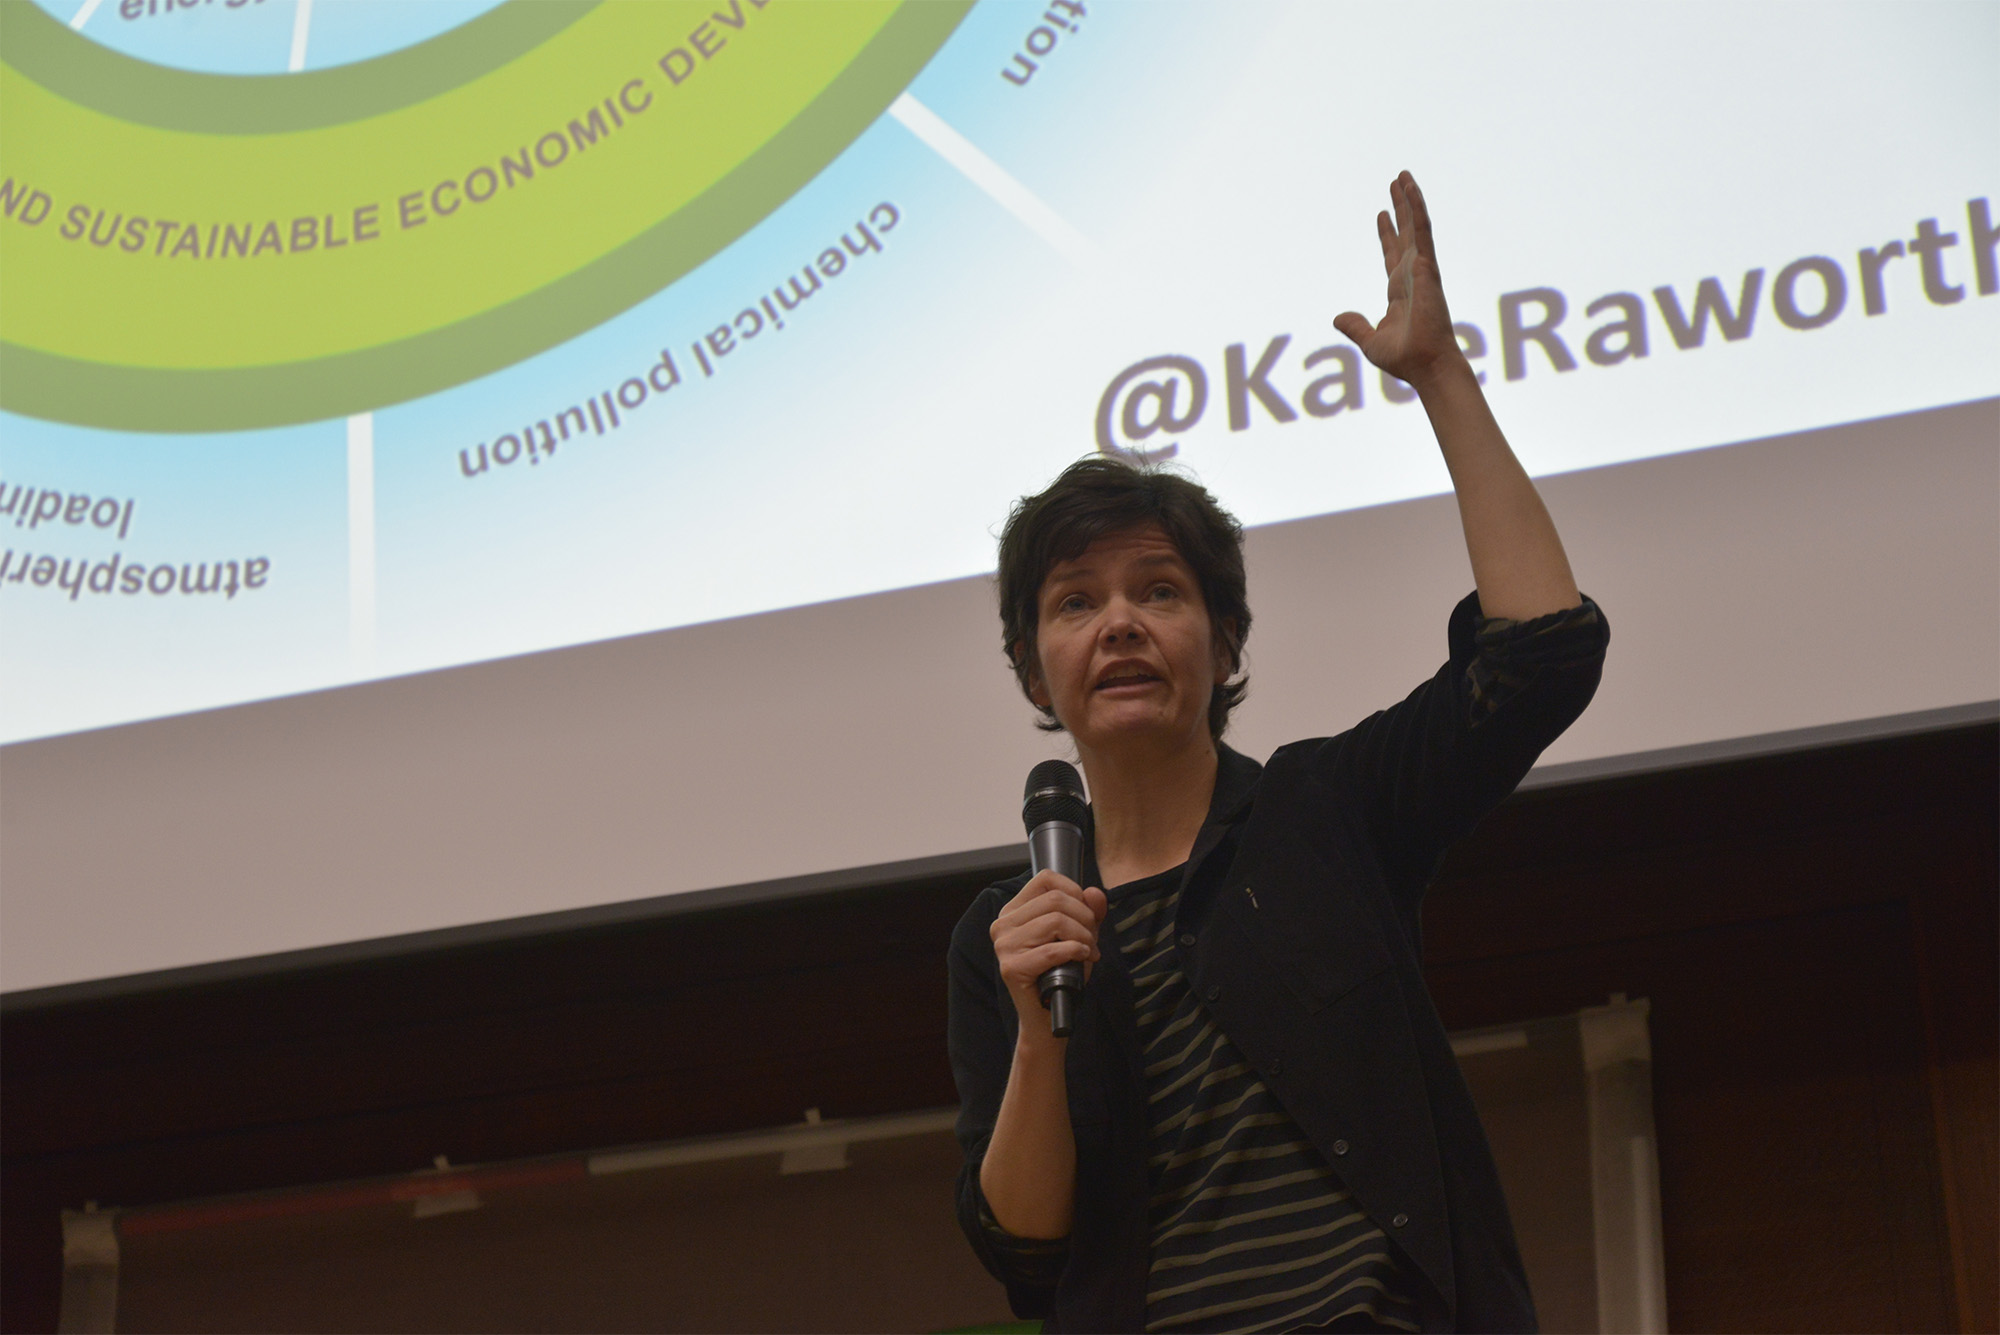 Kate Raworth, economist and development re-thinker, speaking at the 'This Changes Everything' climate change conference in London on Saturday 28th March 2015. (Photo by Jonathan Nicholson/NurPhoto) (Photo by NurPhoto/NurPhoto via Getty Images)